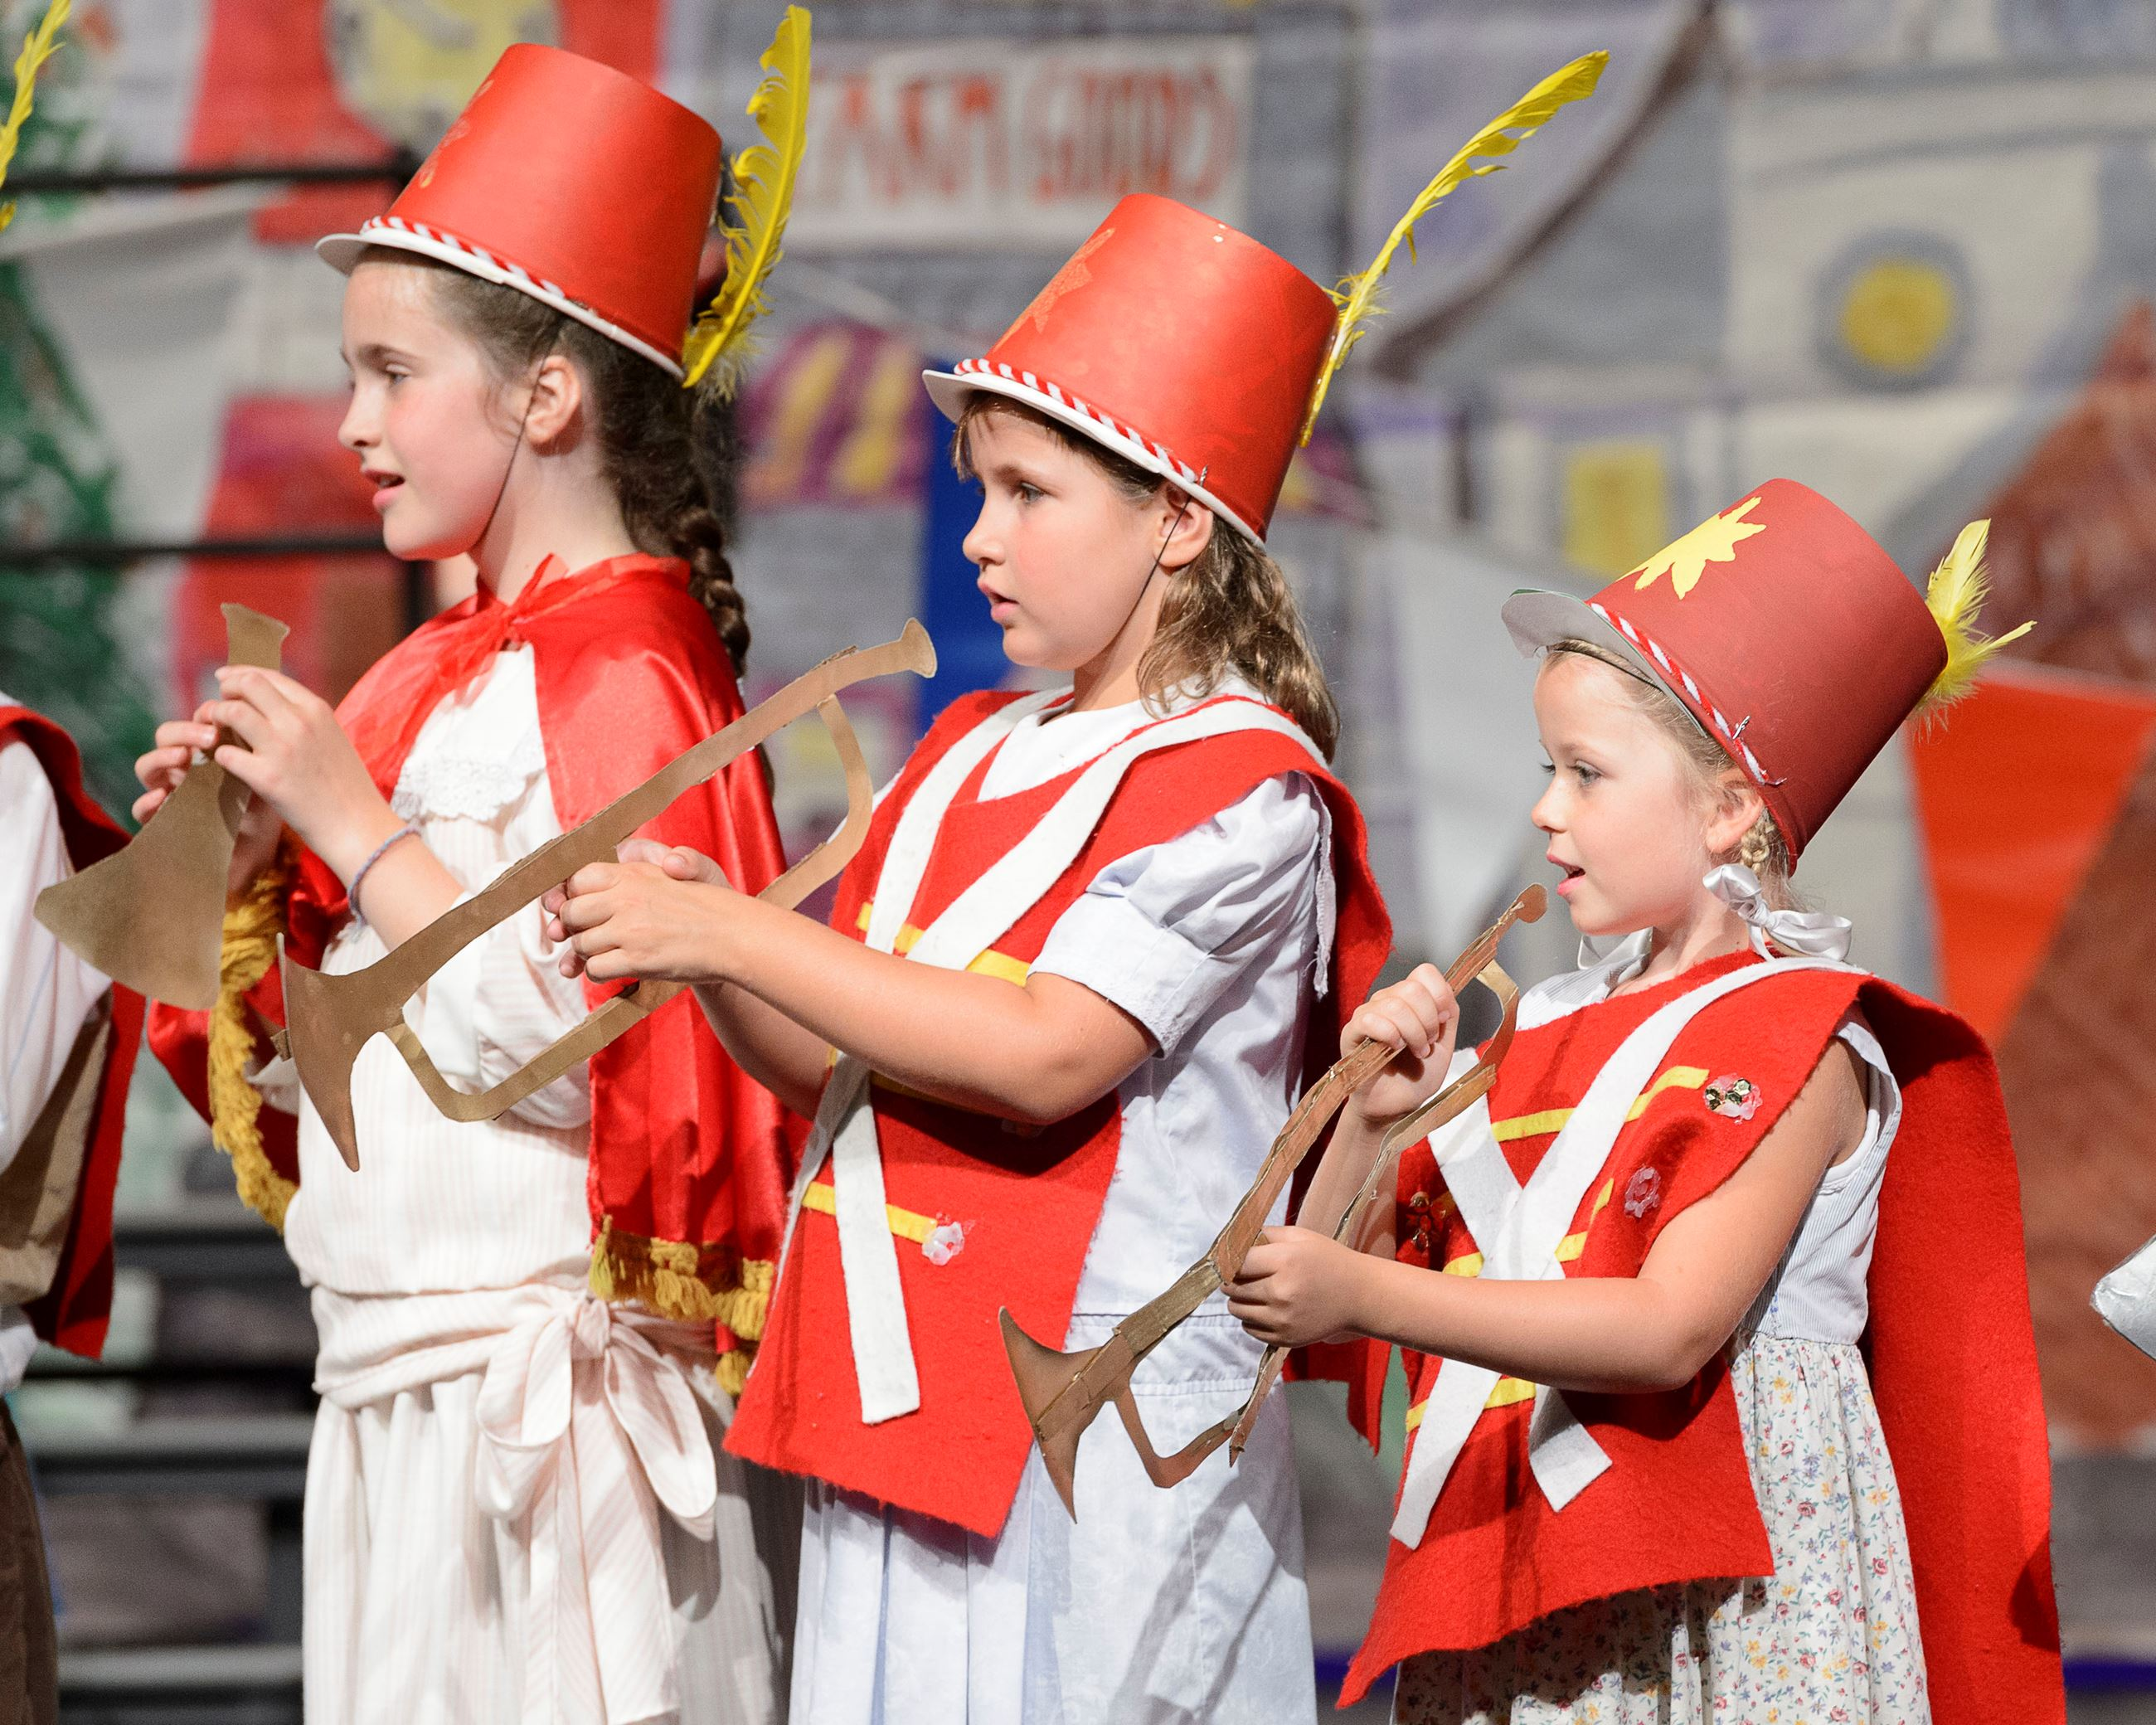 musical theater-1 2016-08-21